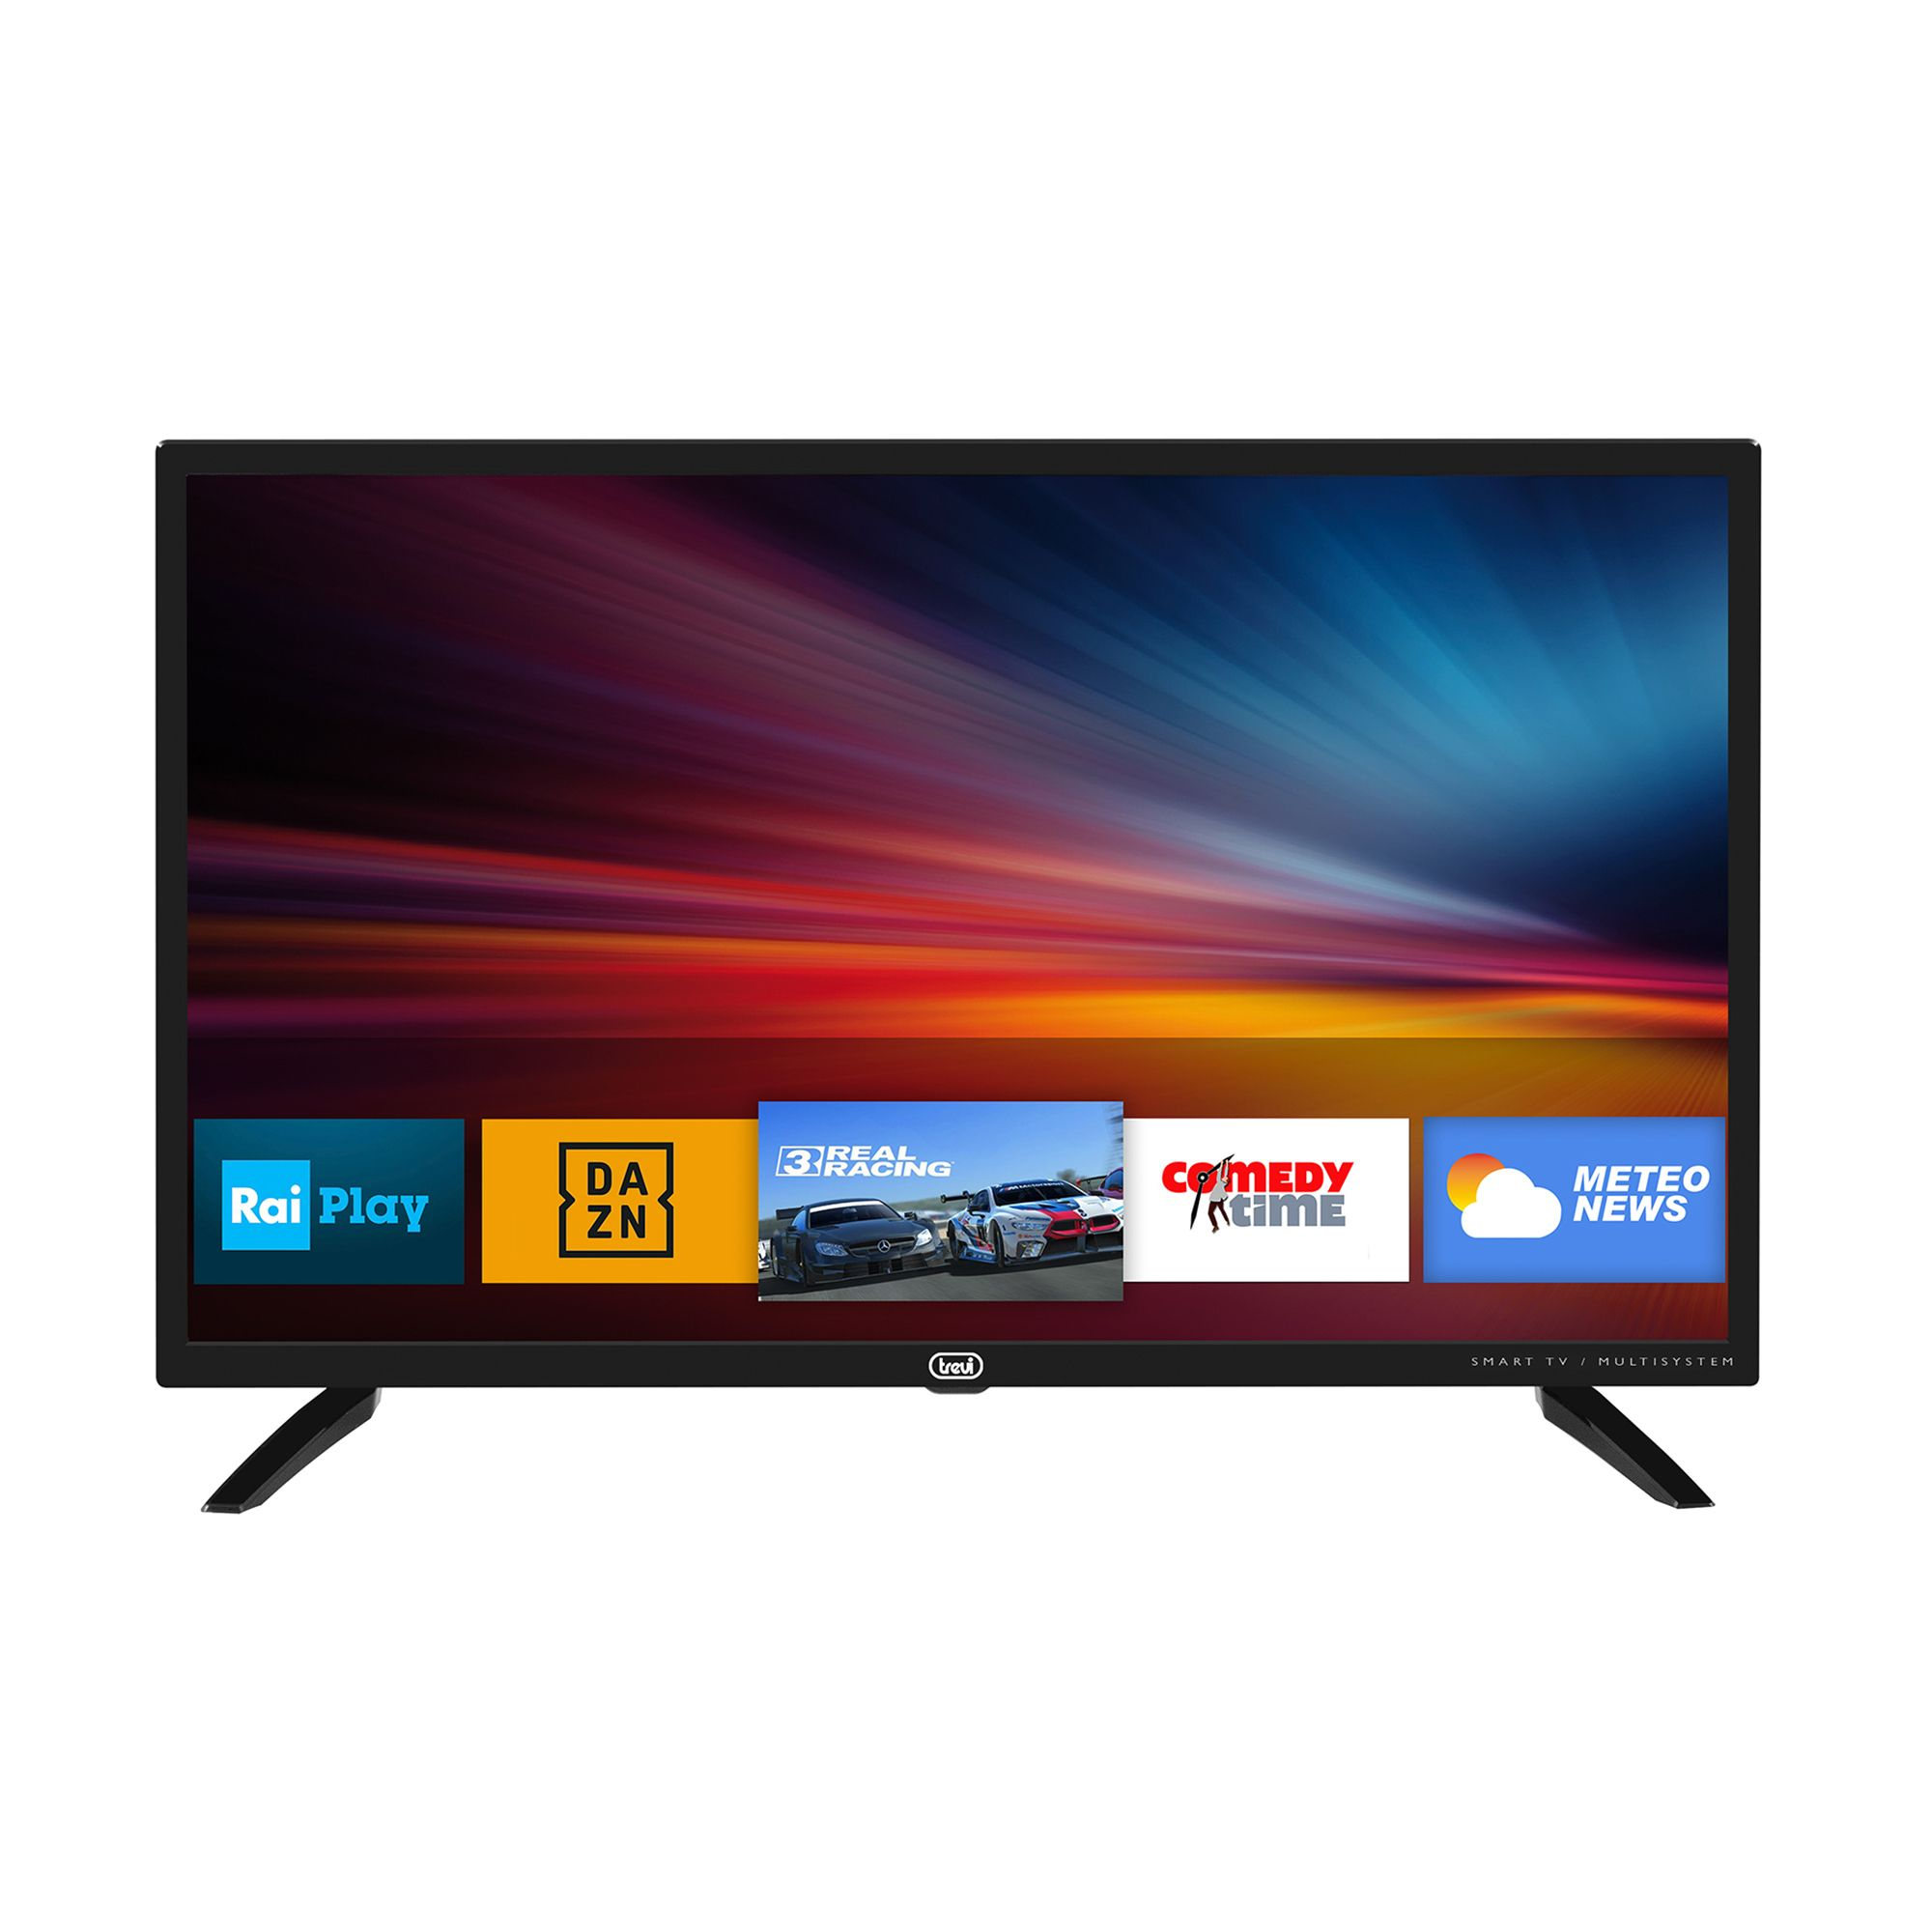 """Image of LTV3209 Smart TV 32"""""""" 1366x768 HD Ready Android 9.0"""